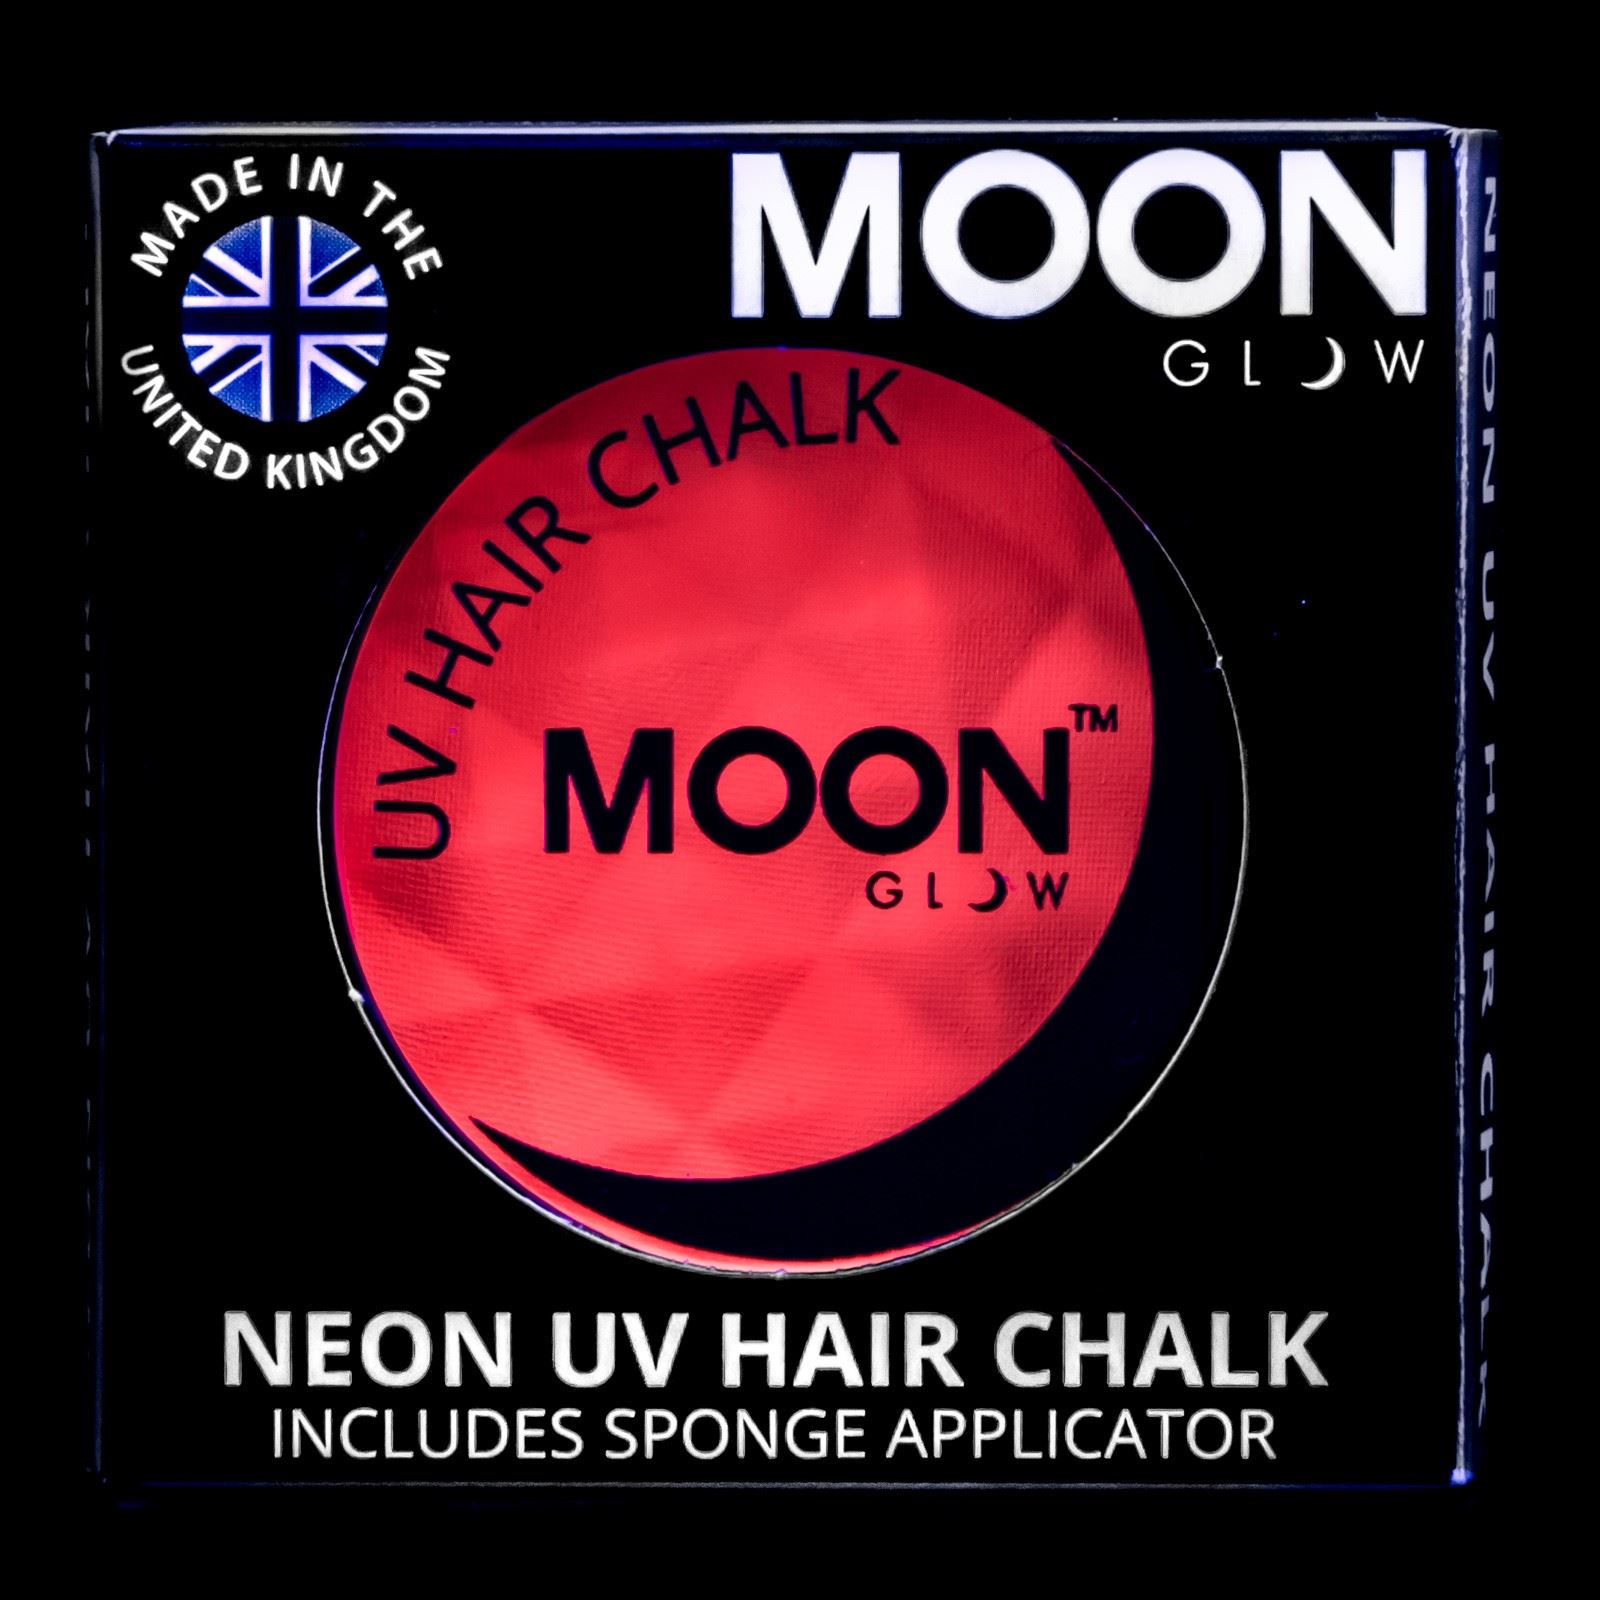 Moon Glow Neon UV Bright Shiny Hair Chalk All Colours Rave Music Festival 3.5g